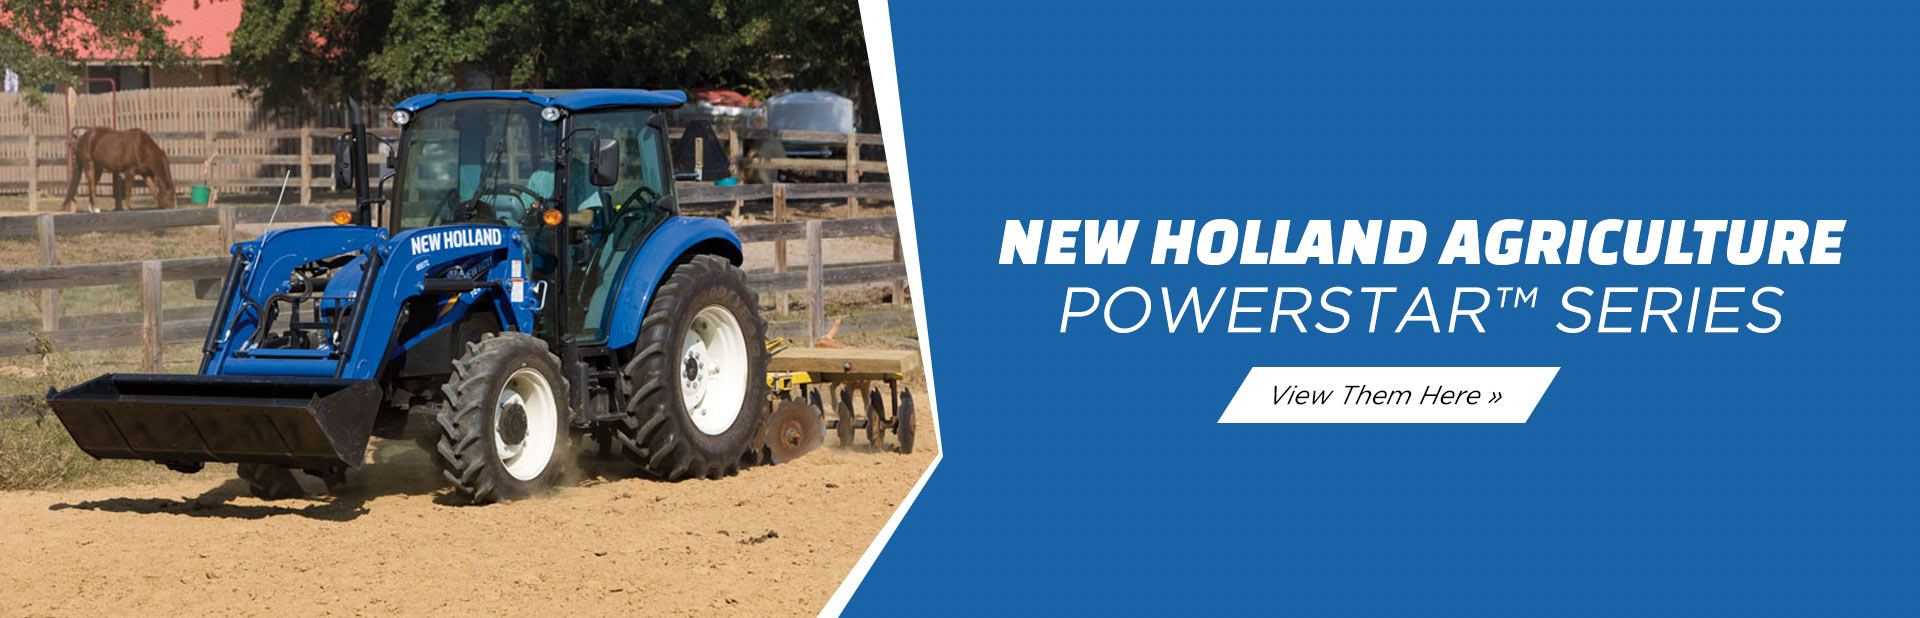 New Holland Agriculture PowerStar™ Series: Click here to view the models.